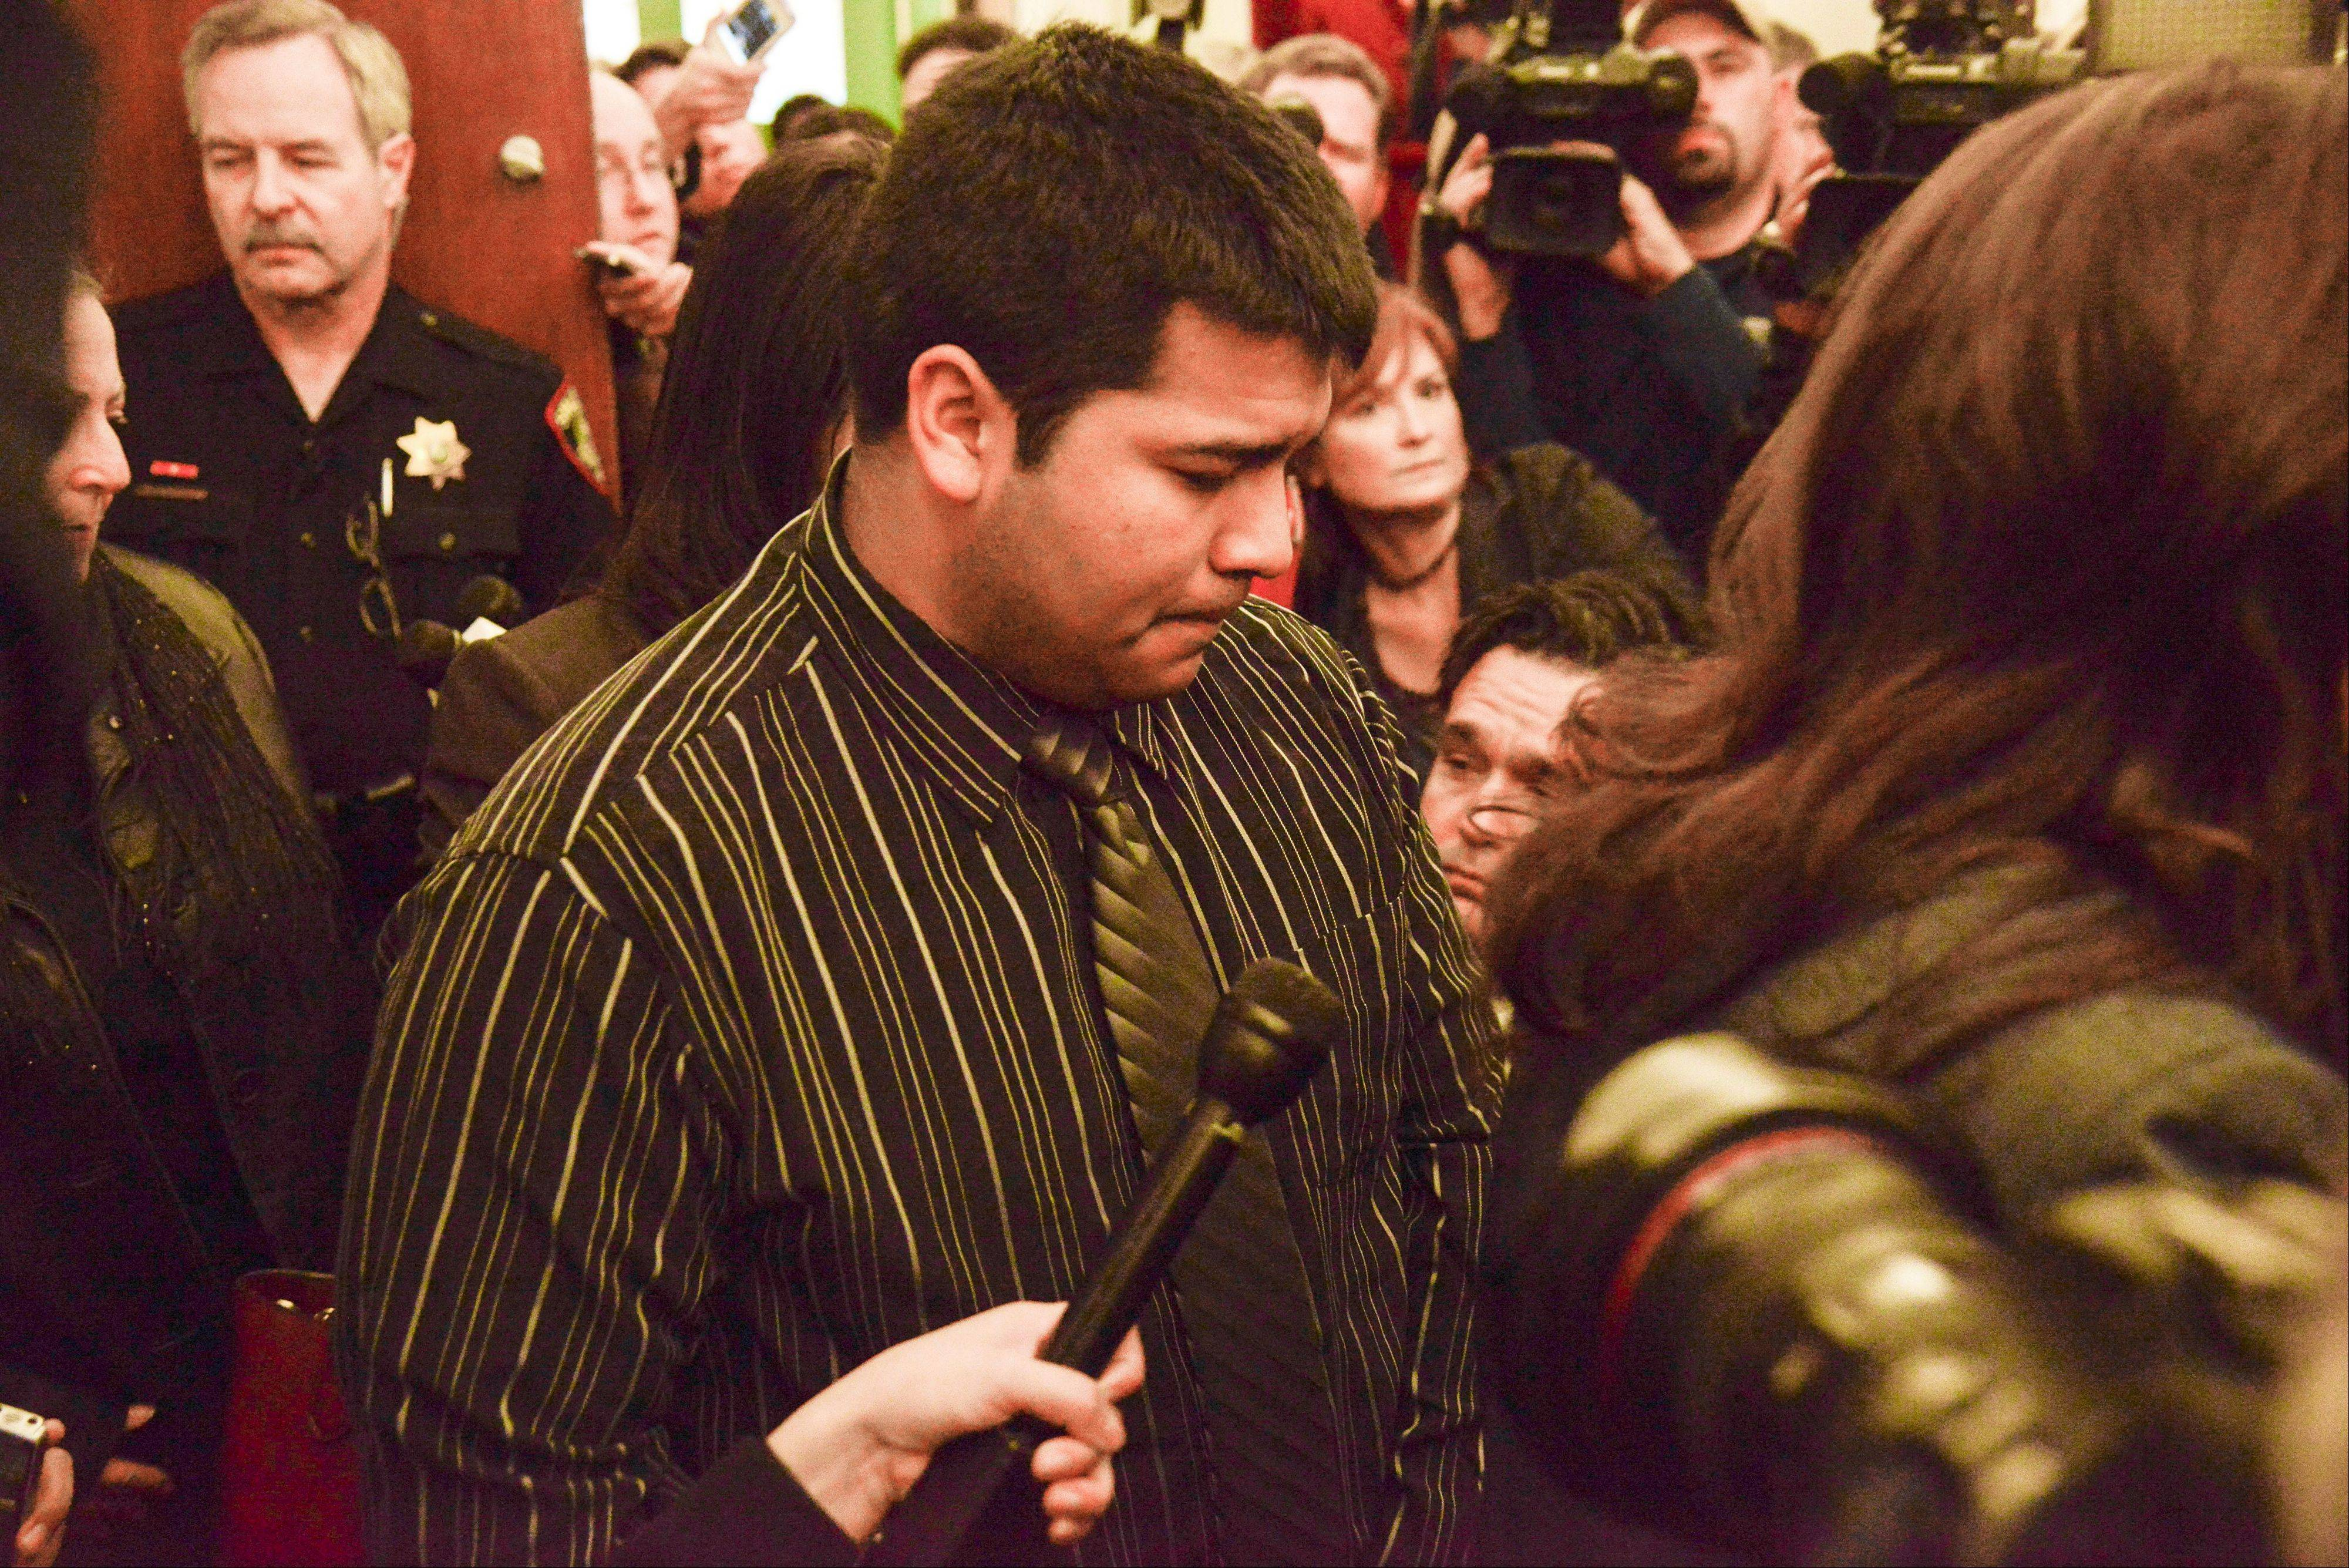 Before Marlise Munoz, a pregnant brain-dead Texas woman was taken off life support over the weekend at the end of a long legal battle, her husband said he decided to name what would have been the couple's second child. Erick Munoz said Monday, Jan. 27, he gave the 23-week-old fetus the name Nicole, the middle name of his late wife.